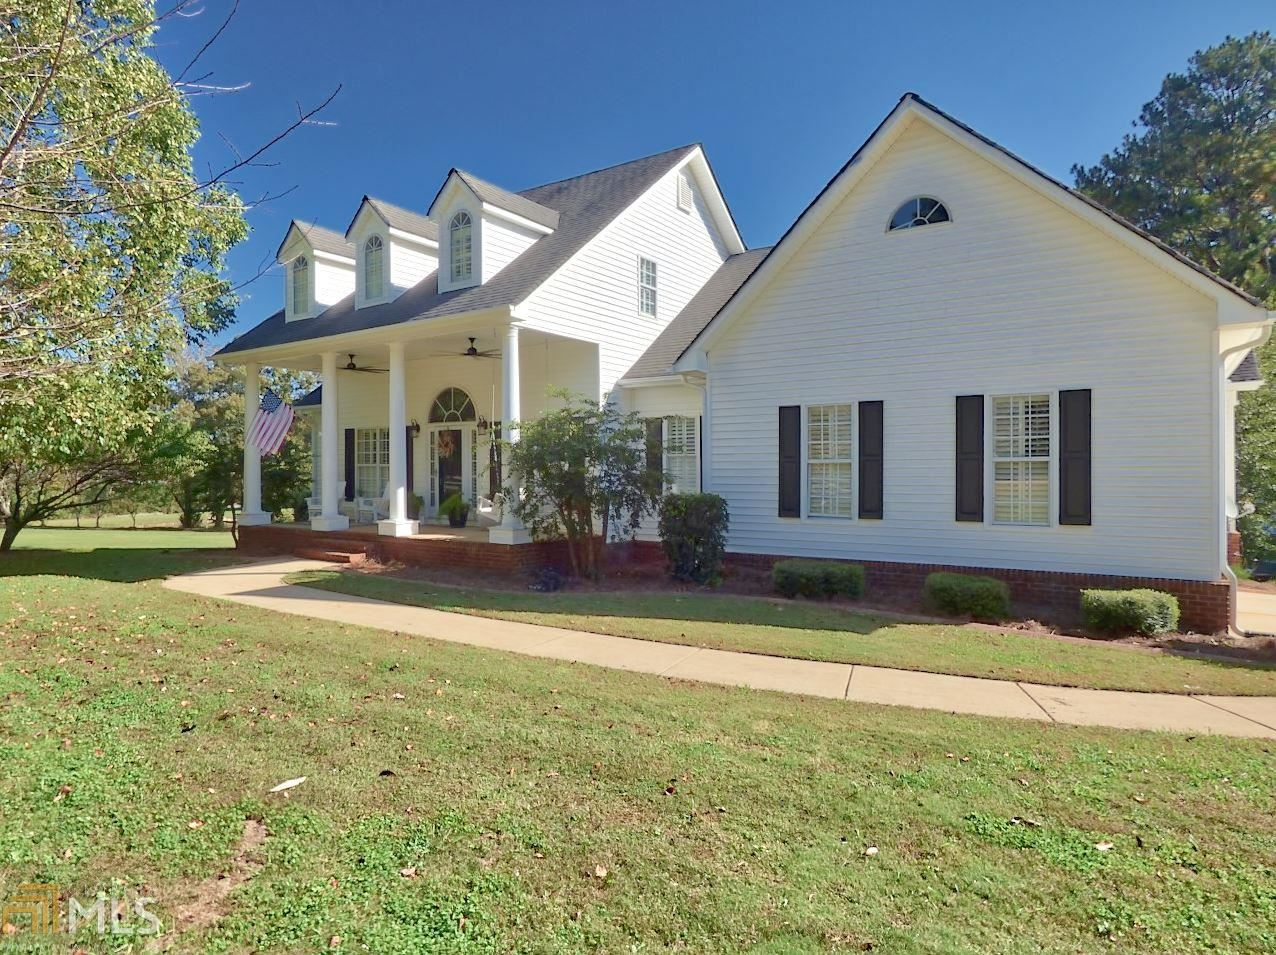 71 Mount Carmel Rd North, Hampton, GA 30228 - MLS#: 8874054